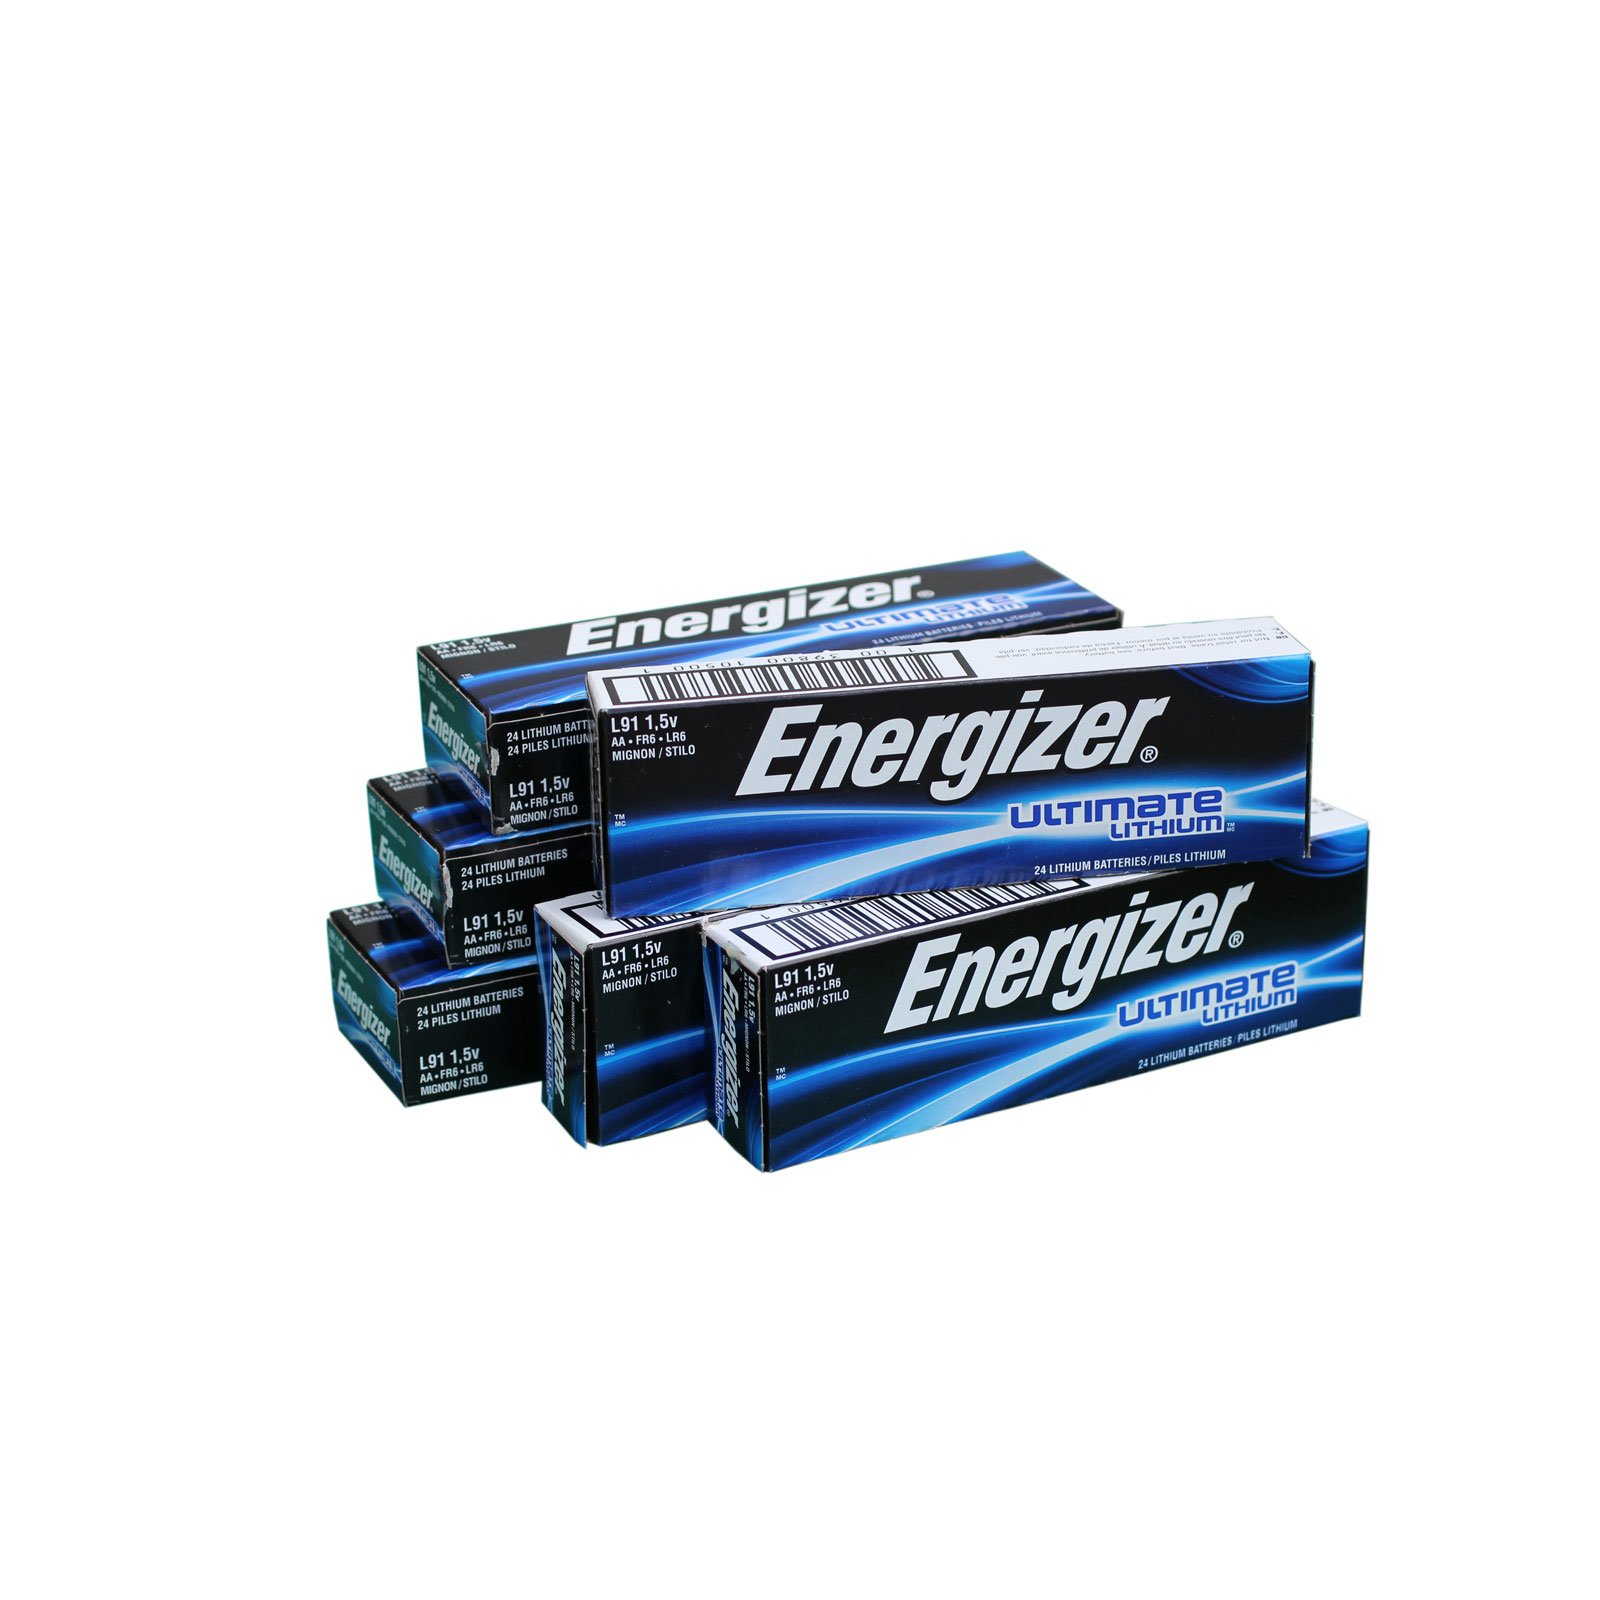 energizer aa ultimate lithium batteries 144 pack free. Black Bedroom Furniture Sets. Home Design Ideas